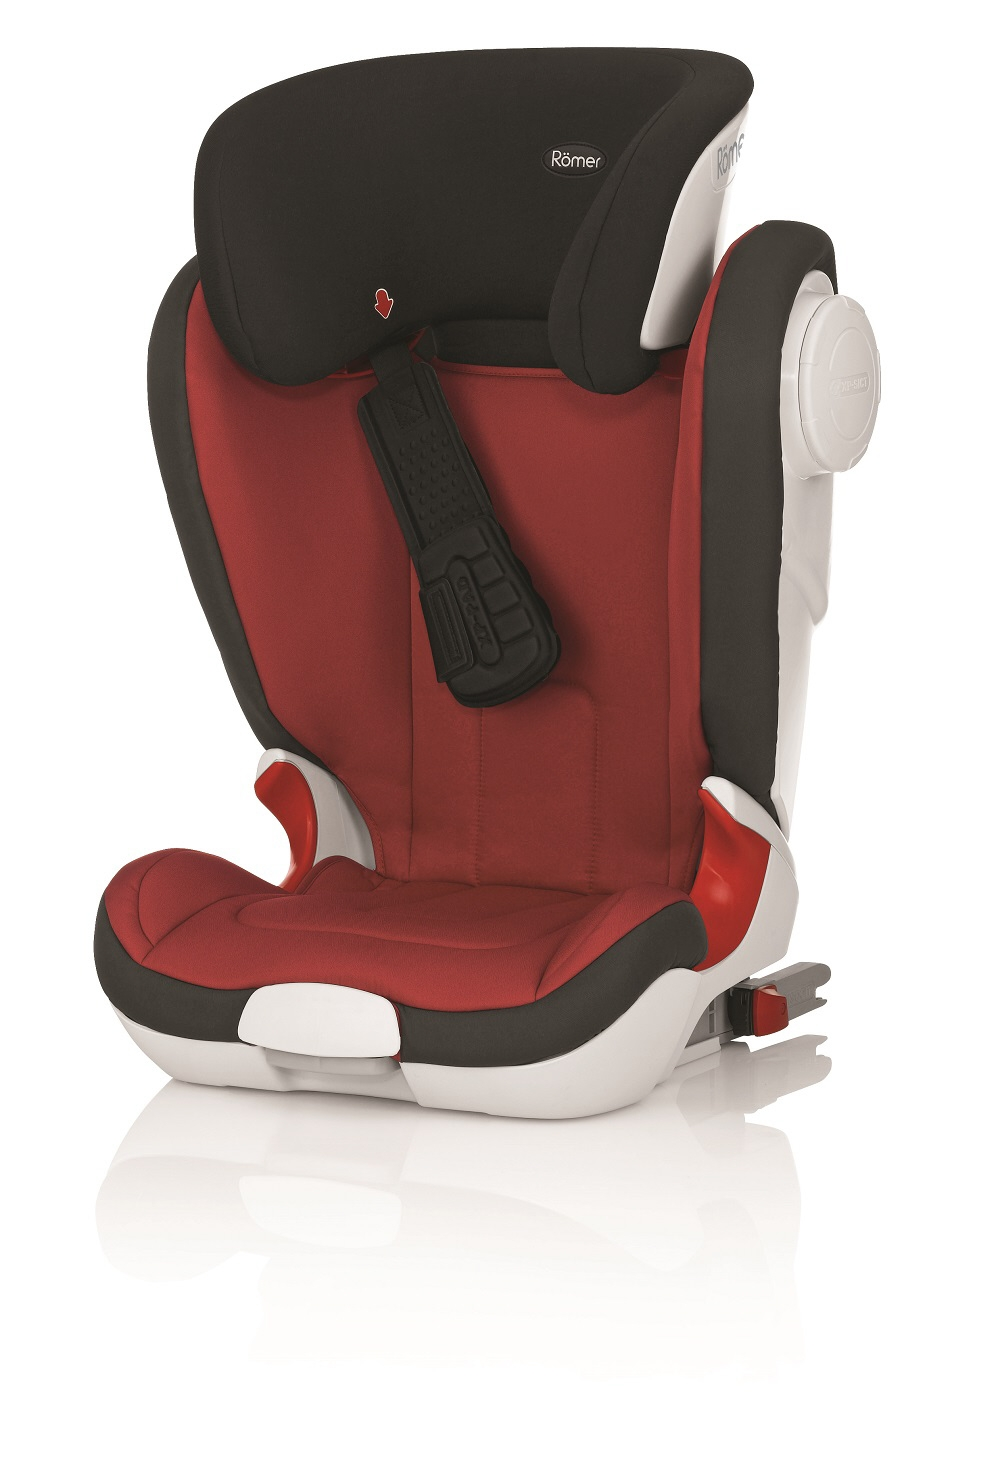 britax r mer child car seat kidfix xp sict 2015 chili. Black Bedroom Furniture Sets. Home Design Ideas